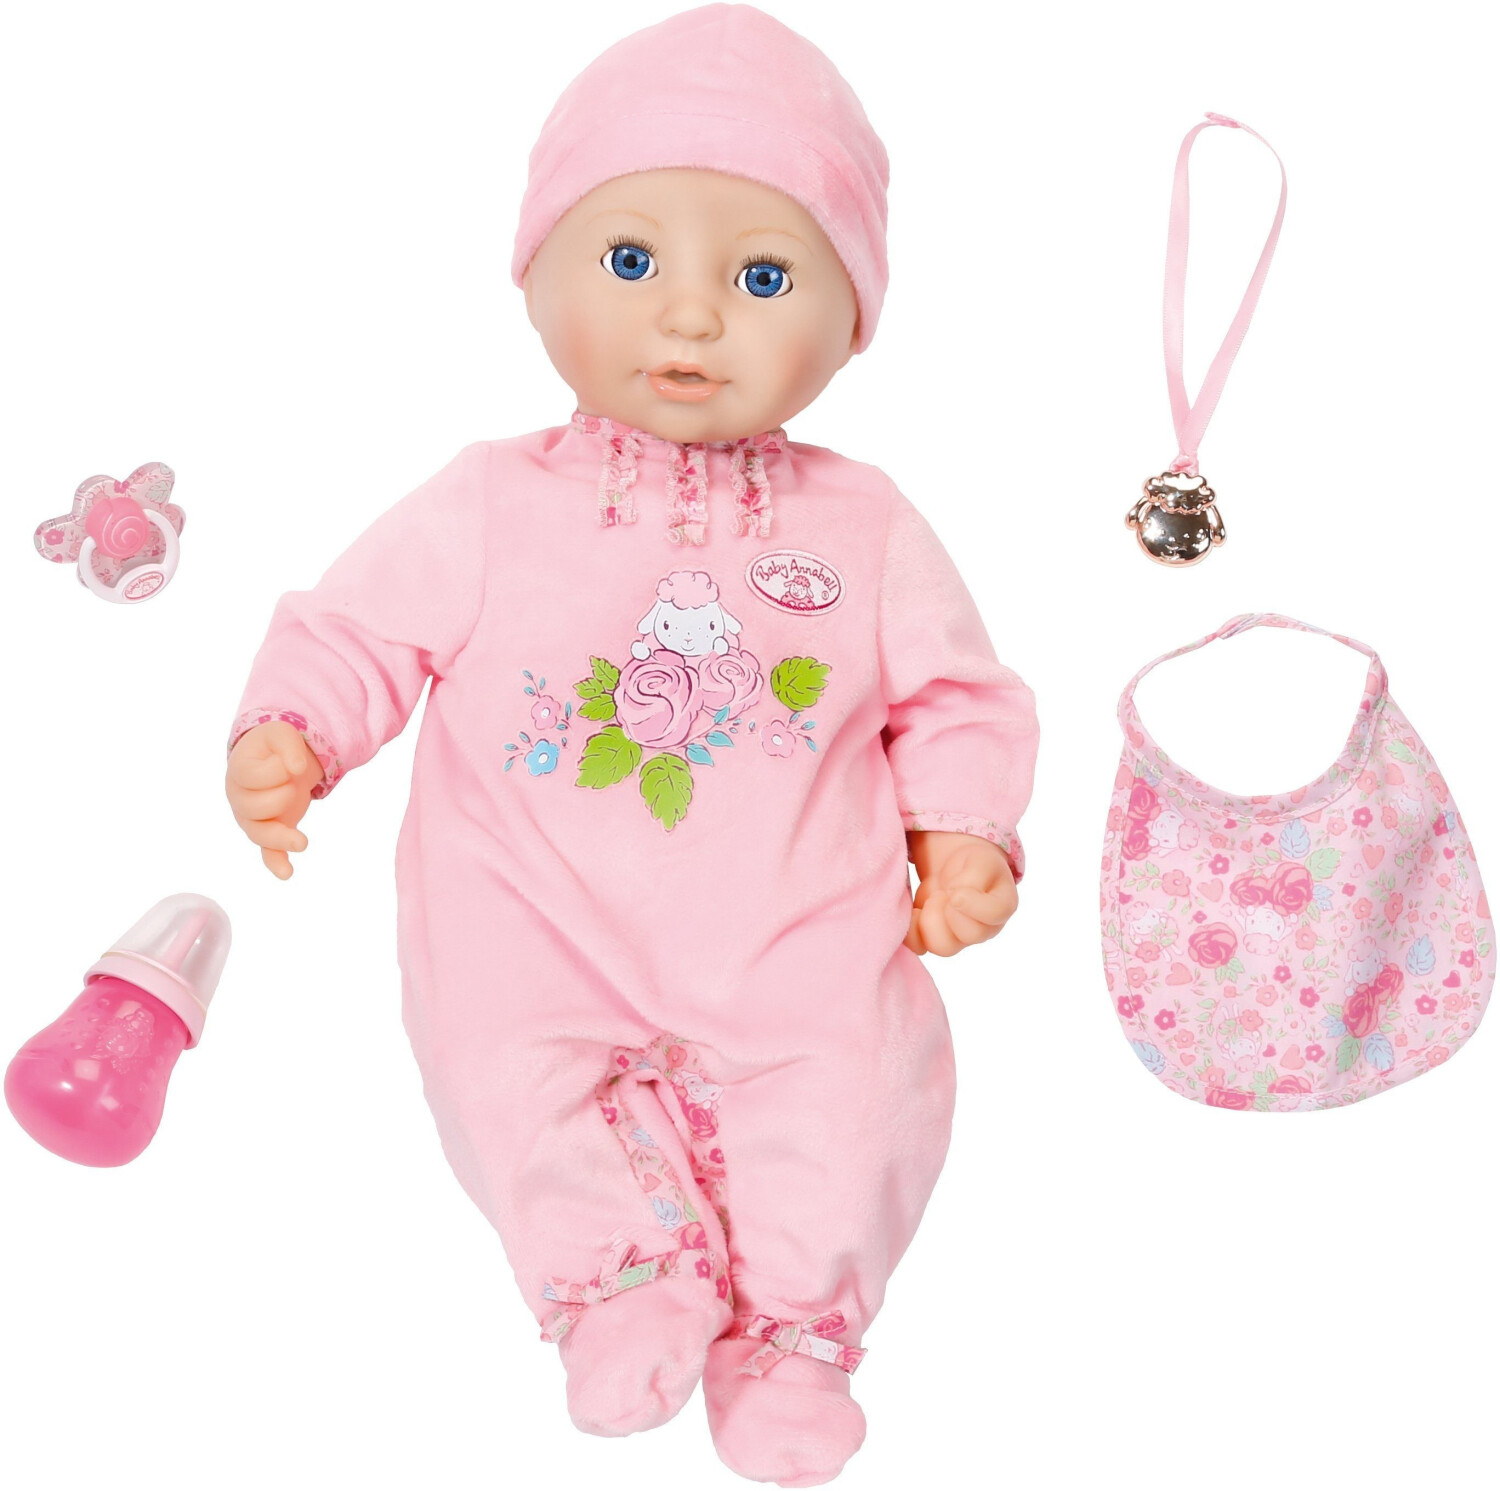 Baby Annabell mit Funktion (794401)